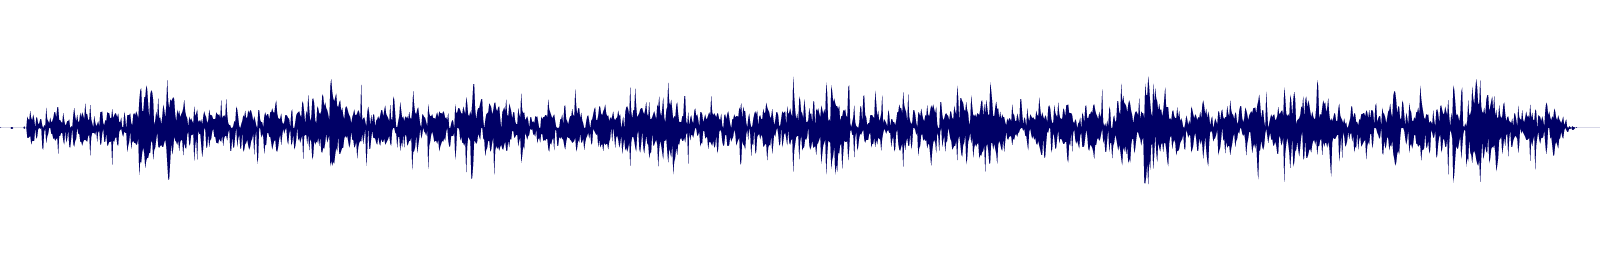 waveform of track #112100